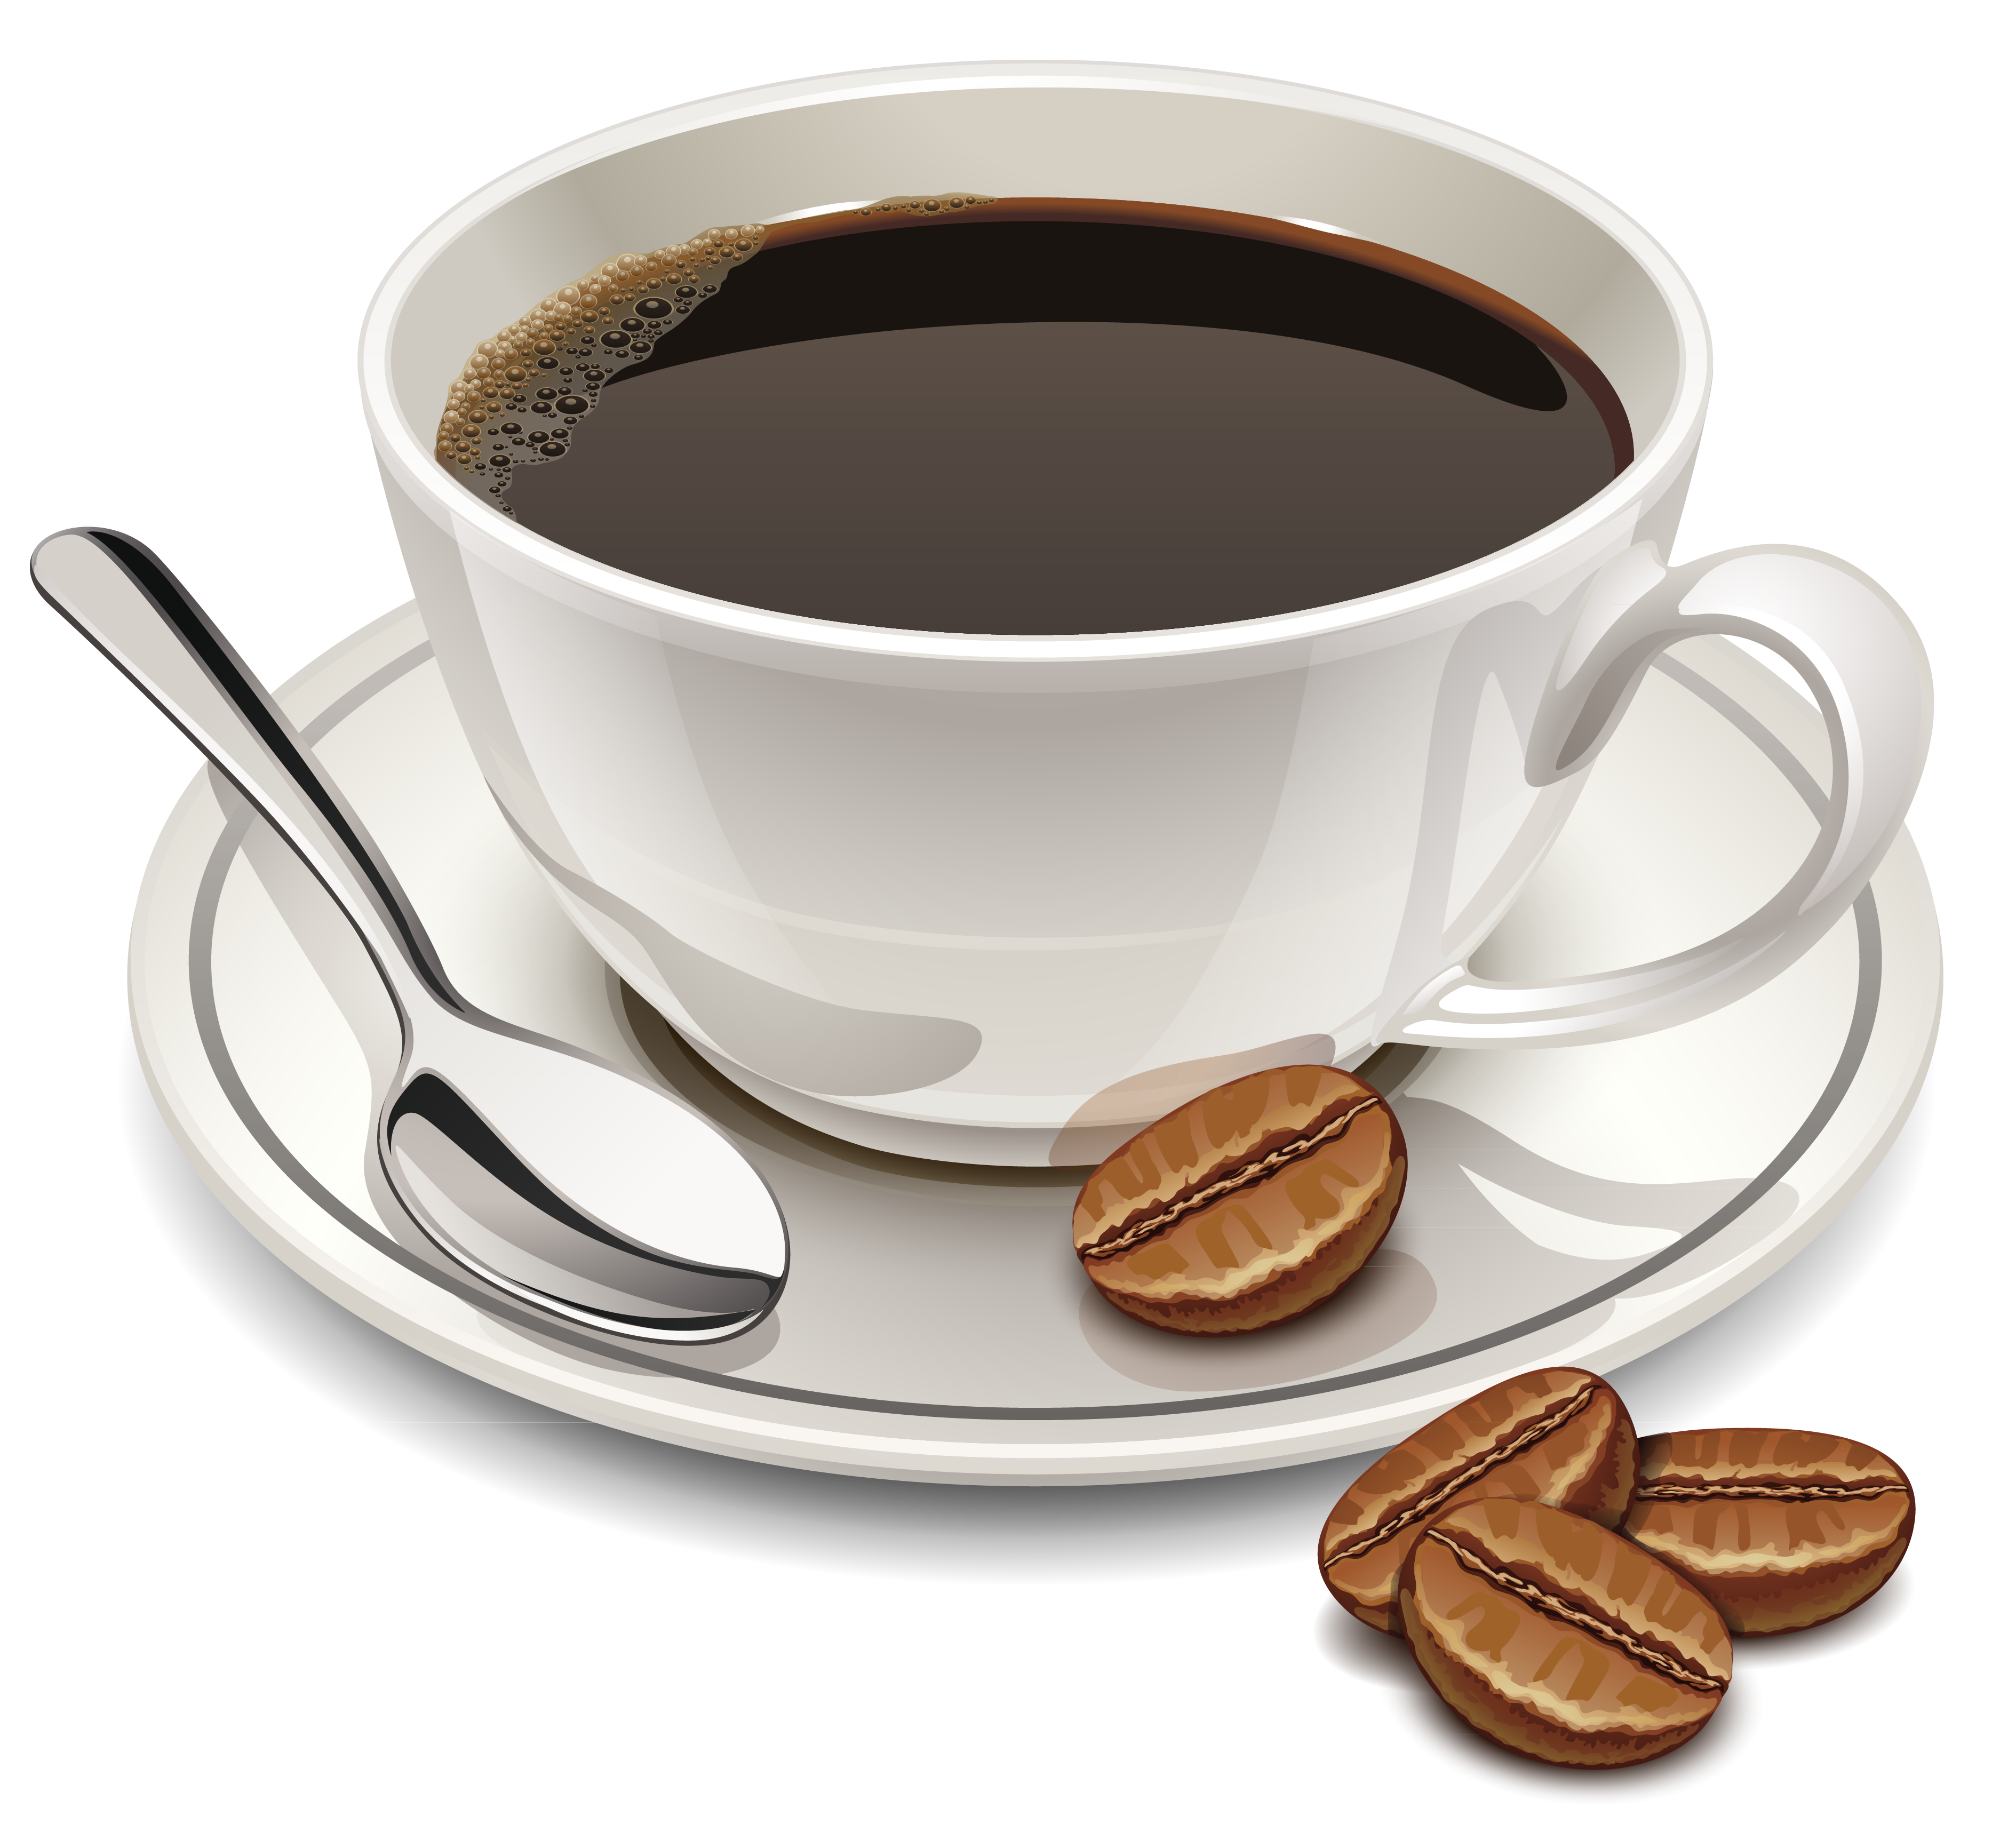 Png transparent images free. Coffee clipart newspaper